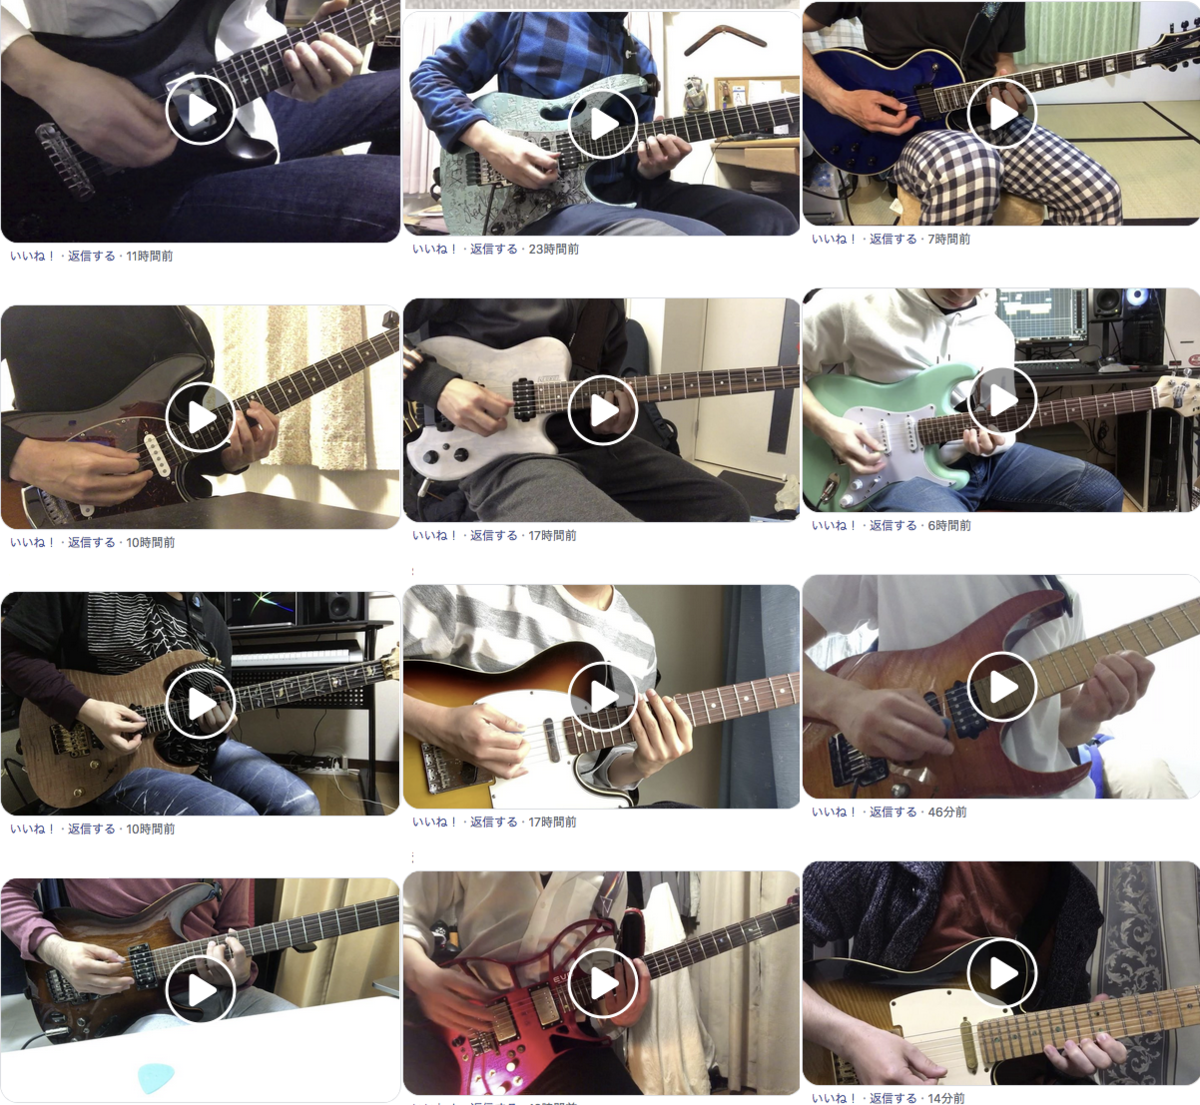 f:id:totalguitarmethod:20190421083542p:plain